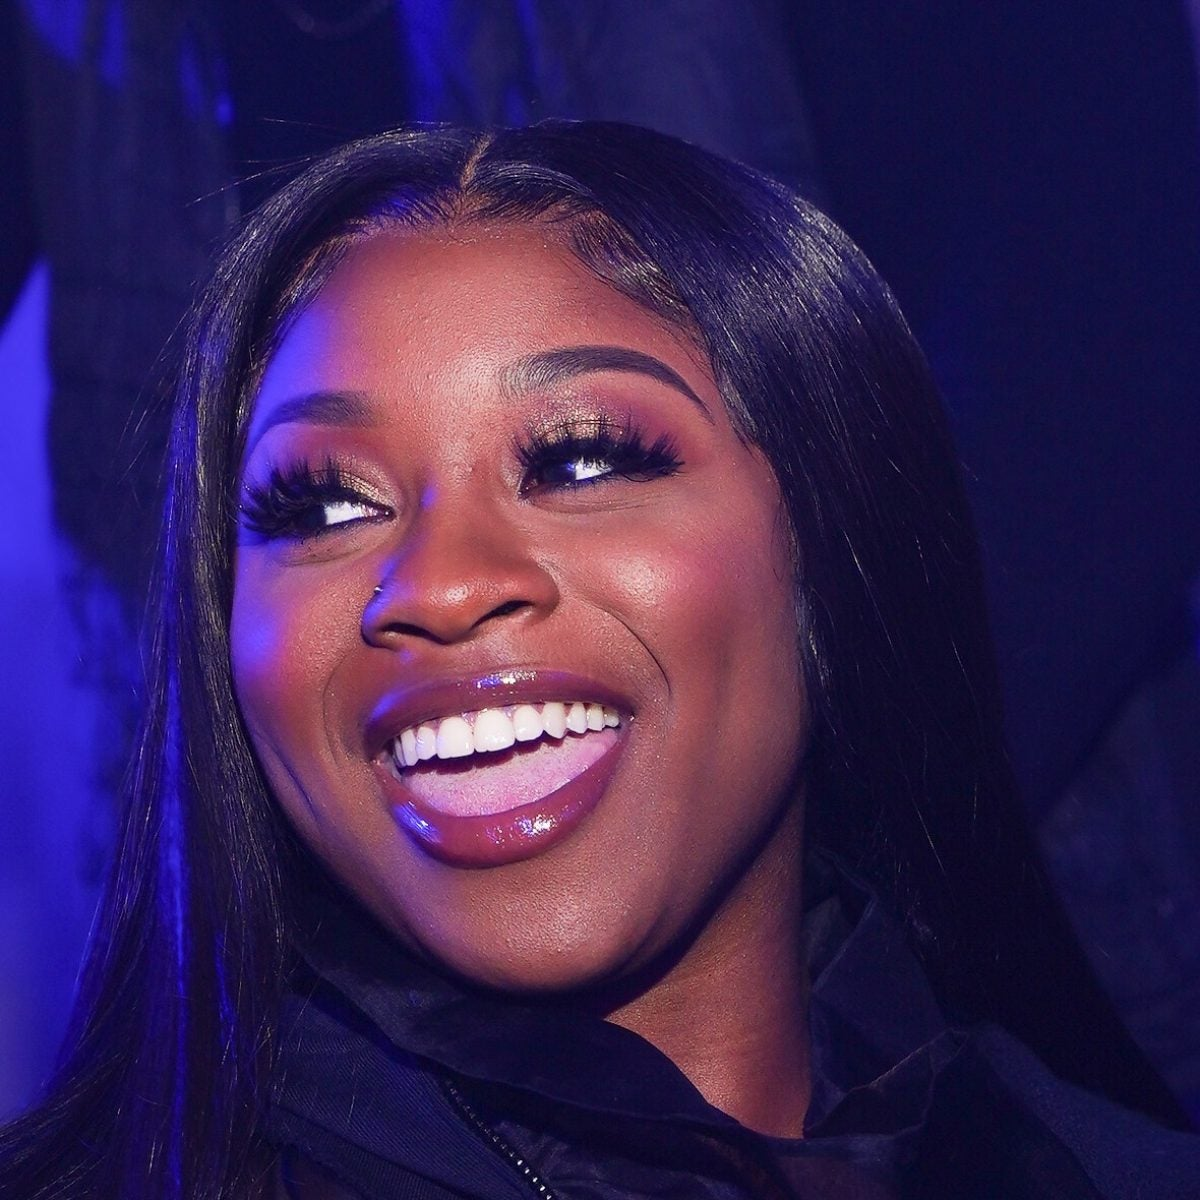 Reginae Carter: The Queen of TikTok